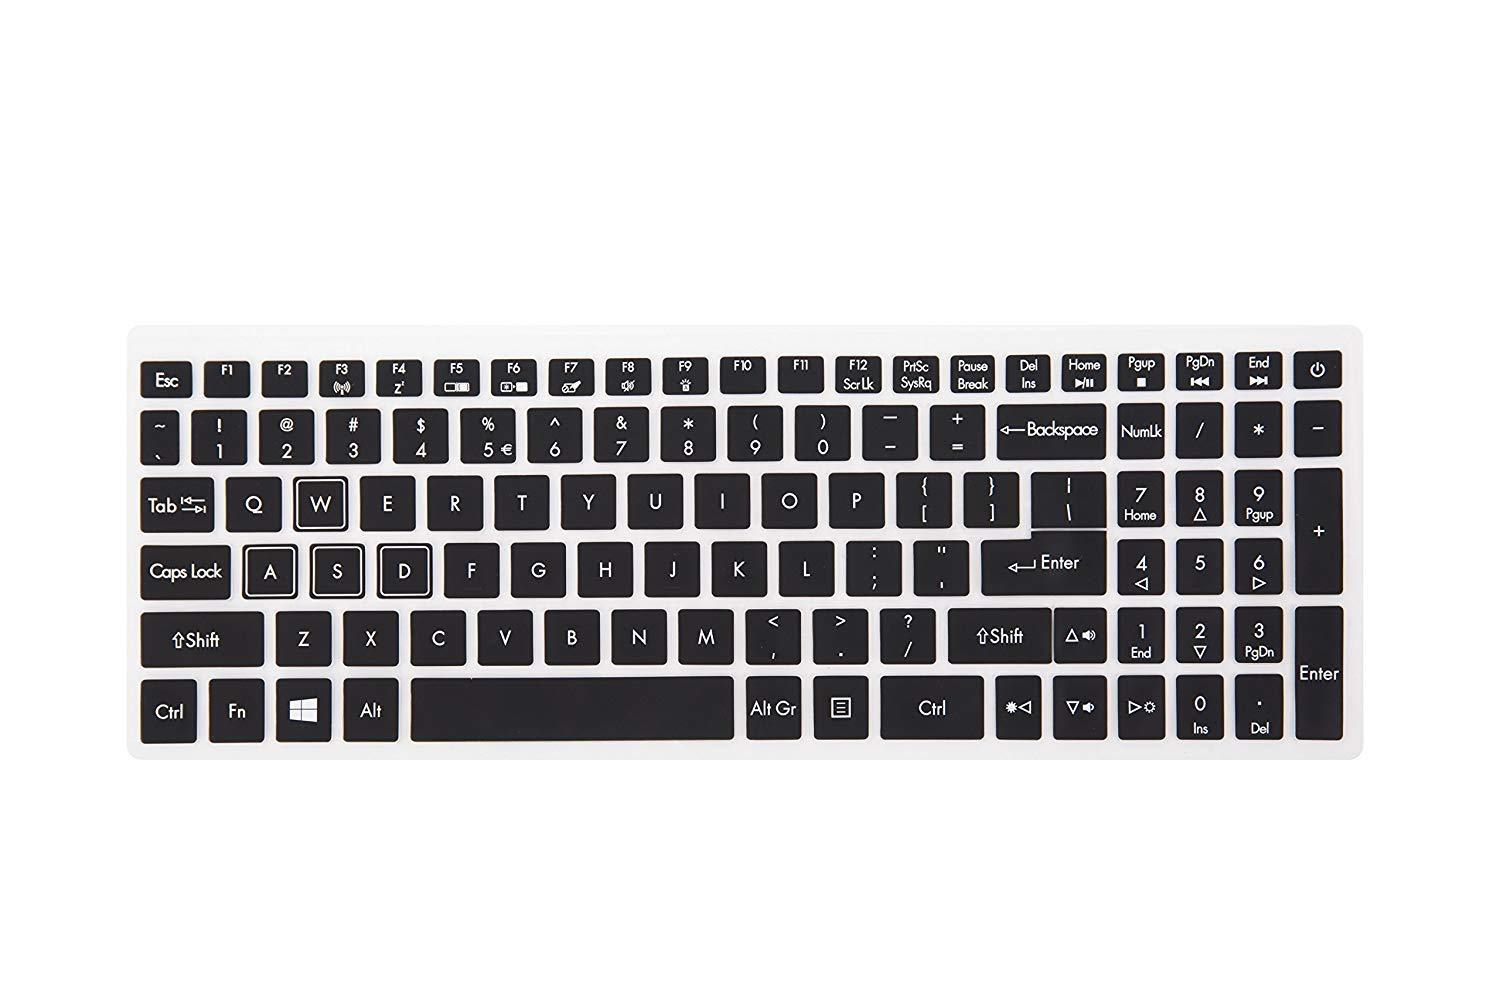 Keyboard Cover Compatible Acer Gaming Laptop Predator Helios 300 500 15.6 17.3 Series Model PH315-51 PH317-52 //Acer Nitro 5 AN515 //Acer VX5-591G VN7-793G Gaming Edition